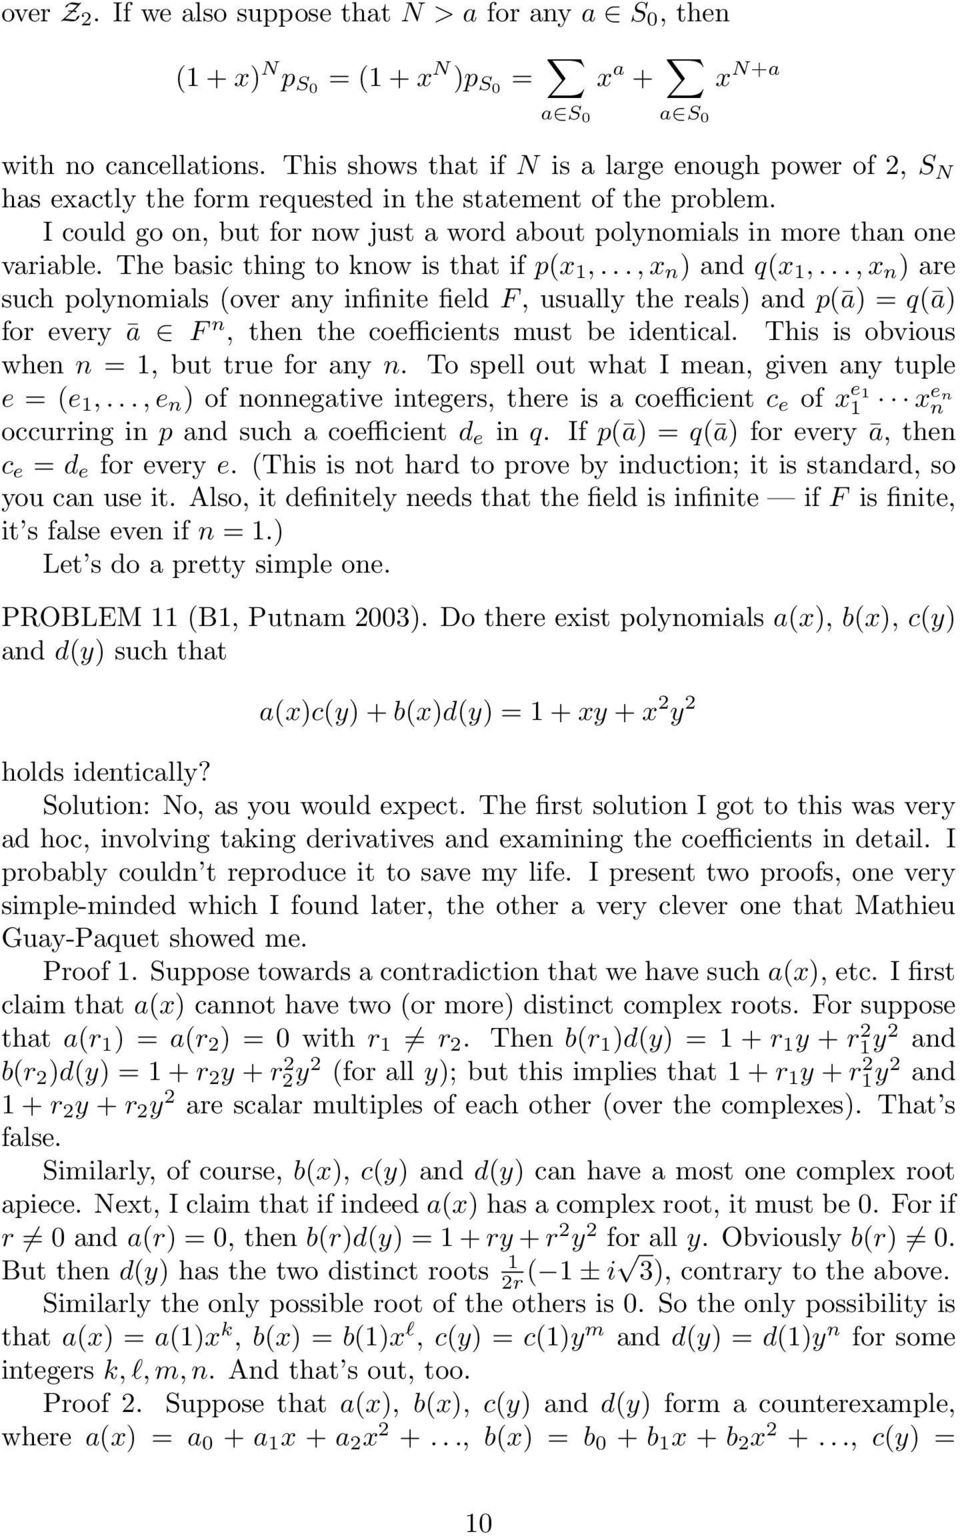 I could go on, but for now just a word about polynomials in more than one variable. The basic thing to know is that if p(x 1,..., x n ) and q(x 1,.